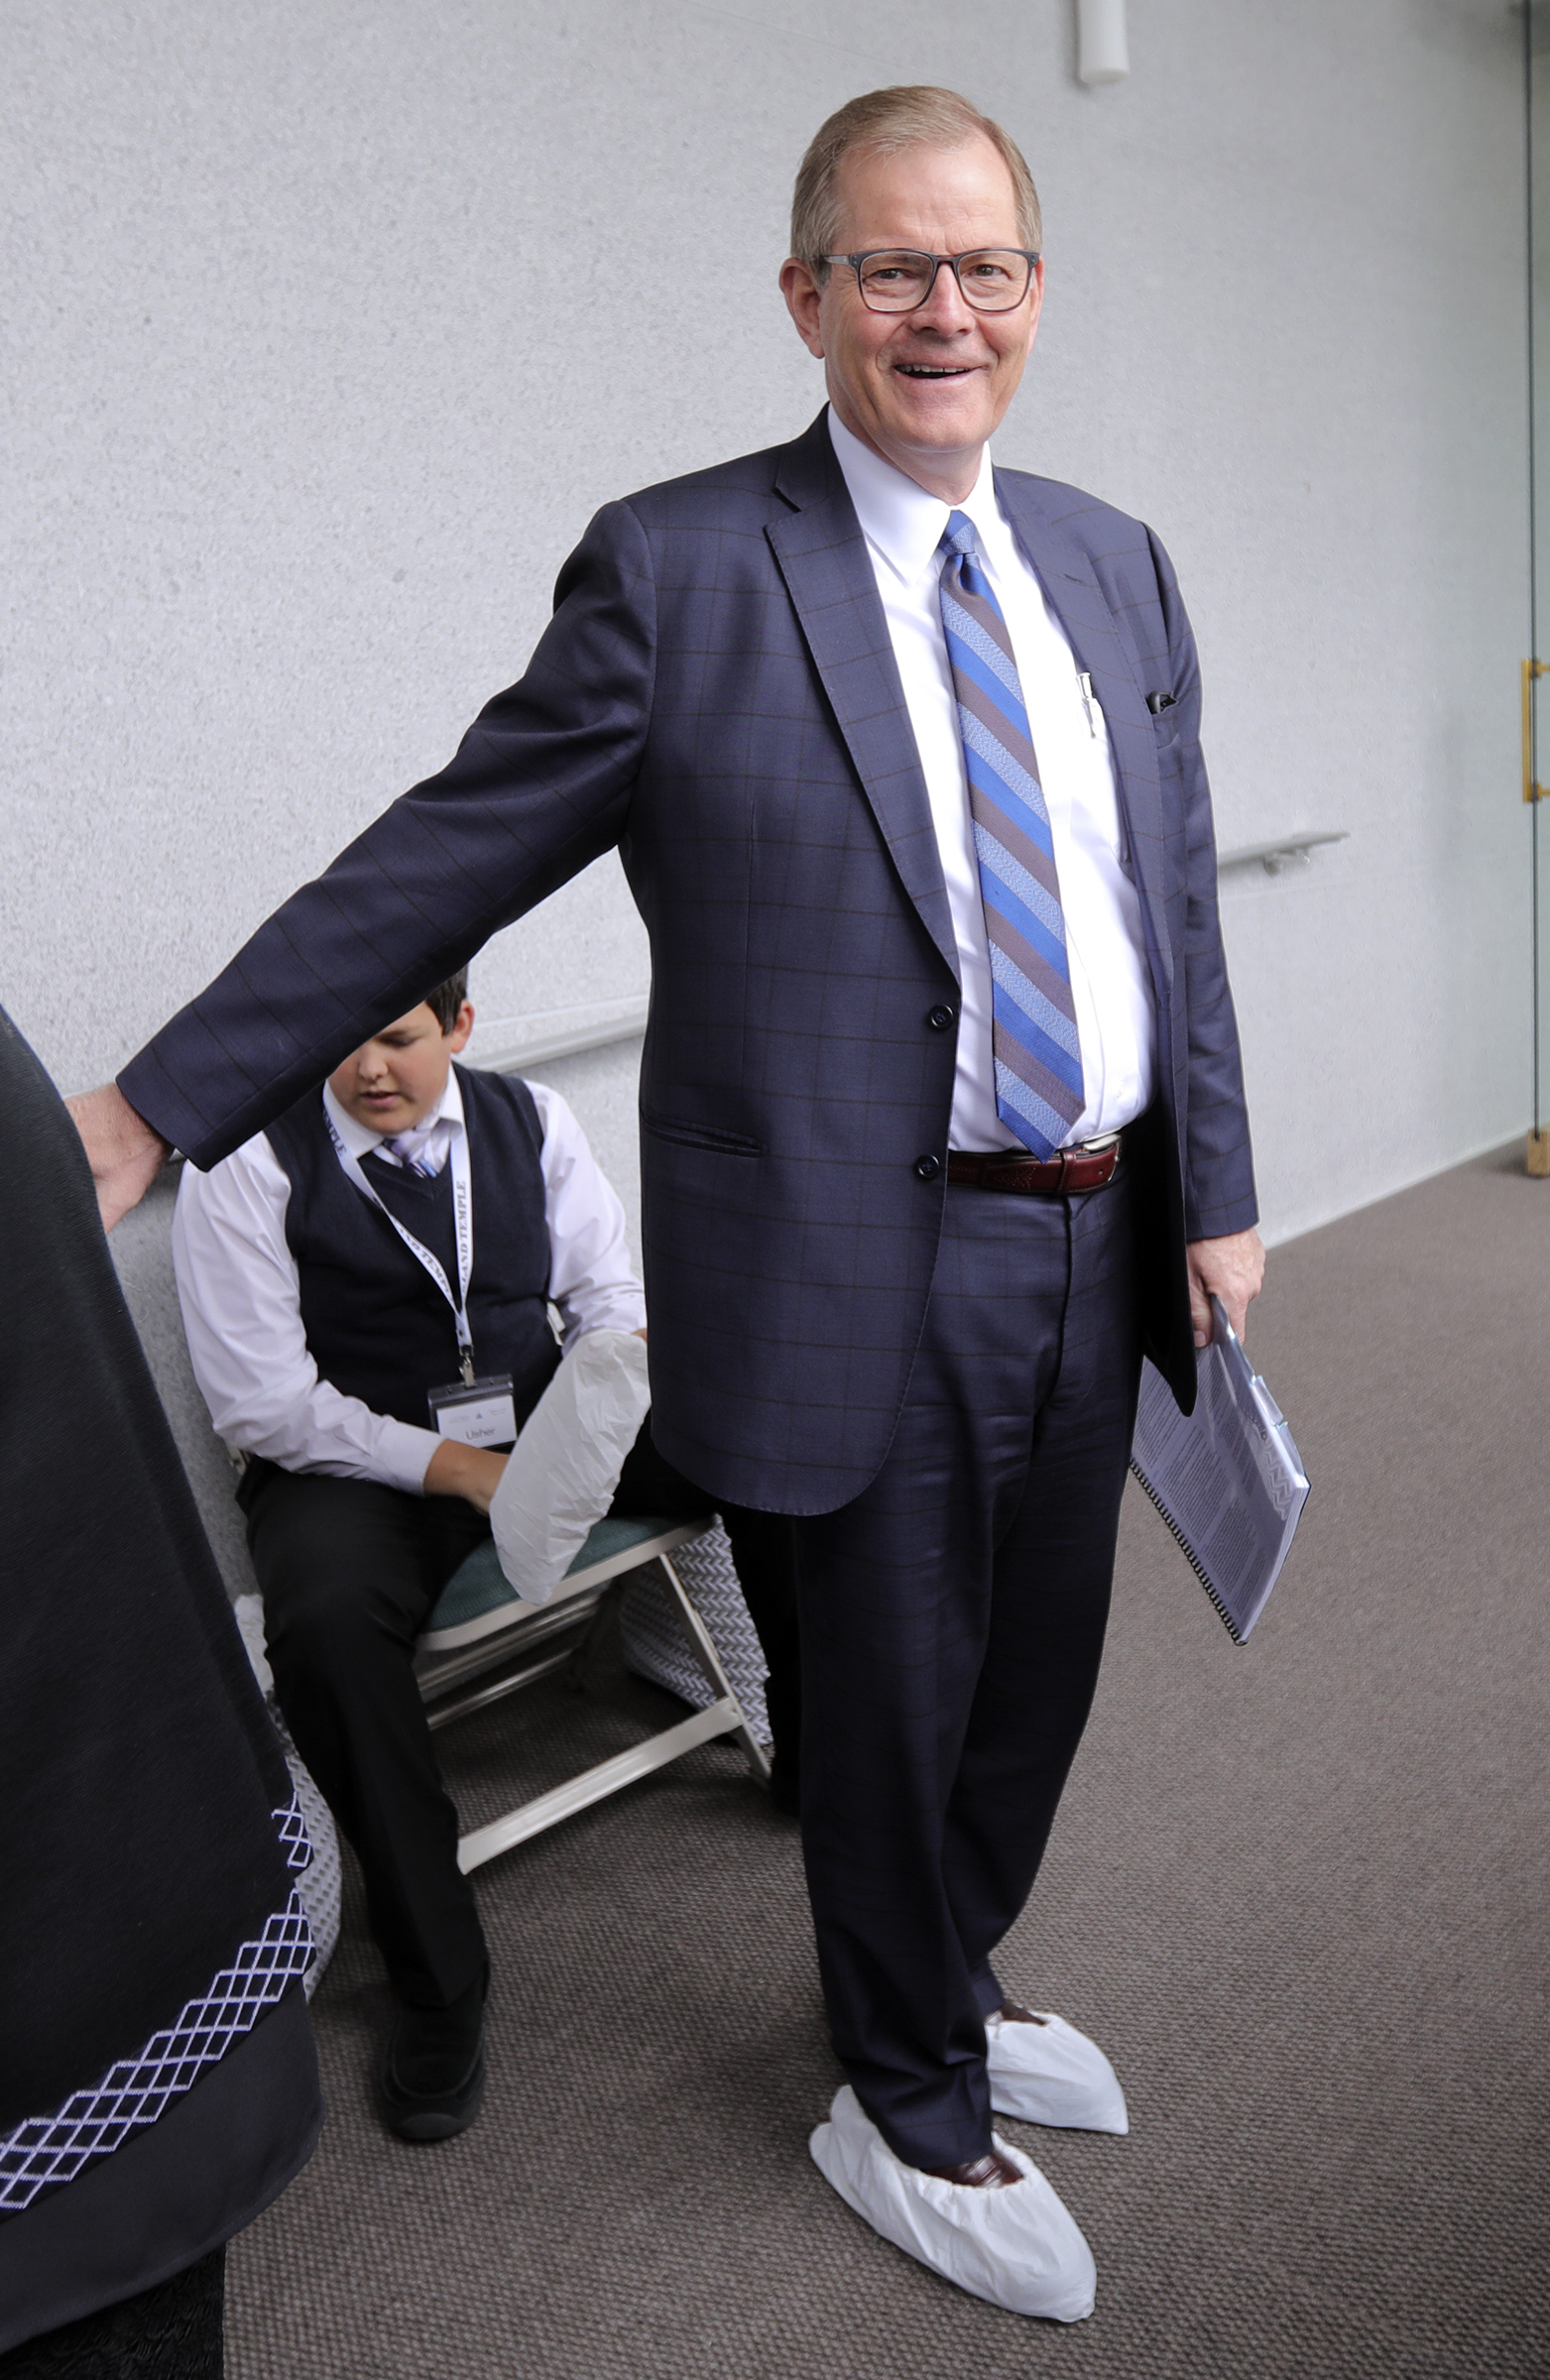 Elder Gary E. Stevenson, of the Quorum of the Twelve Apostles, puts shoe covers on before touring the newly renovated Oakland California Temple, of The Church of Jesus Christ of Latter-day Saints, in Oakland, Calif., on Monday, May 6, 2019.